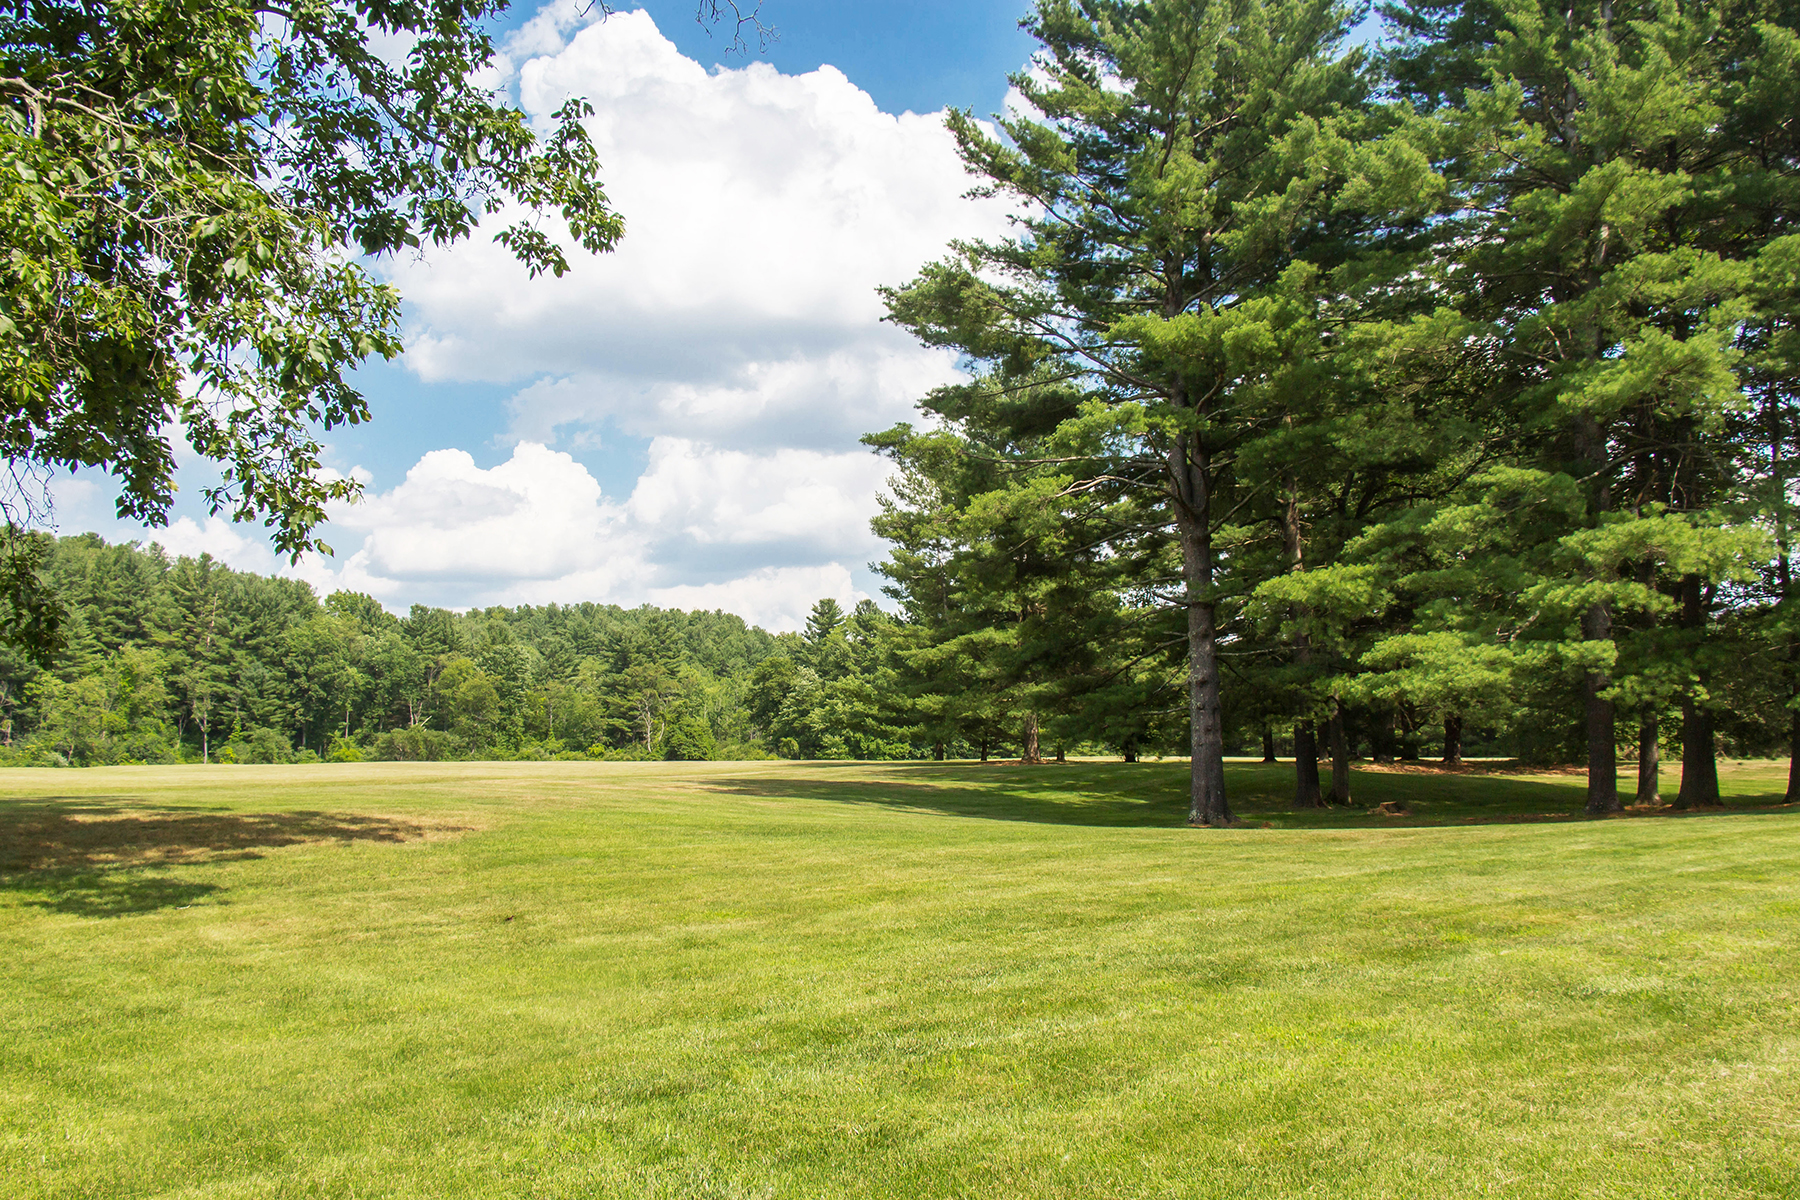 Land for Sale at Nott Rd 9432 Nott Rd Guilderland, 12084 United States